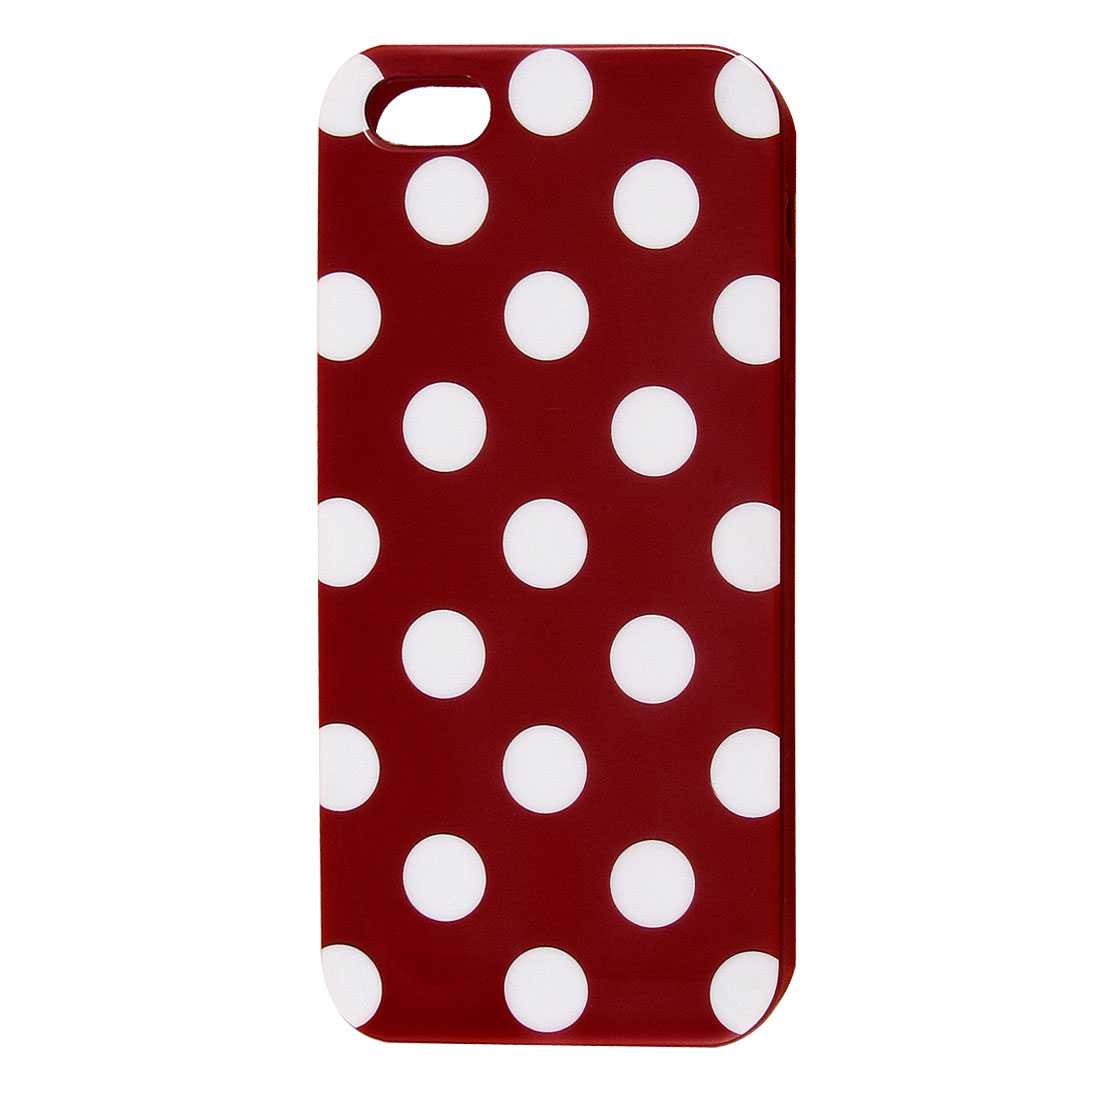 White Polka Dot Dark Red Plastic TPU Phone Case Cover for Apple iPhone 5 5G